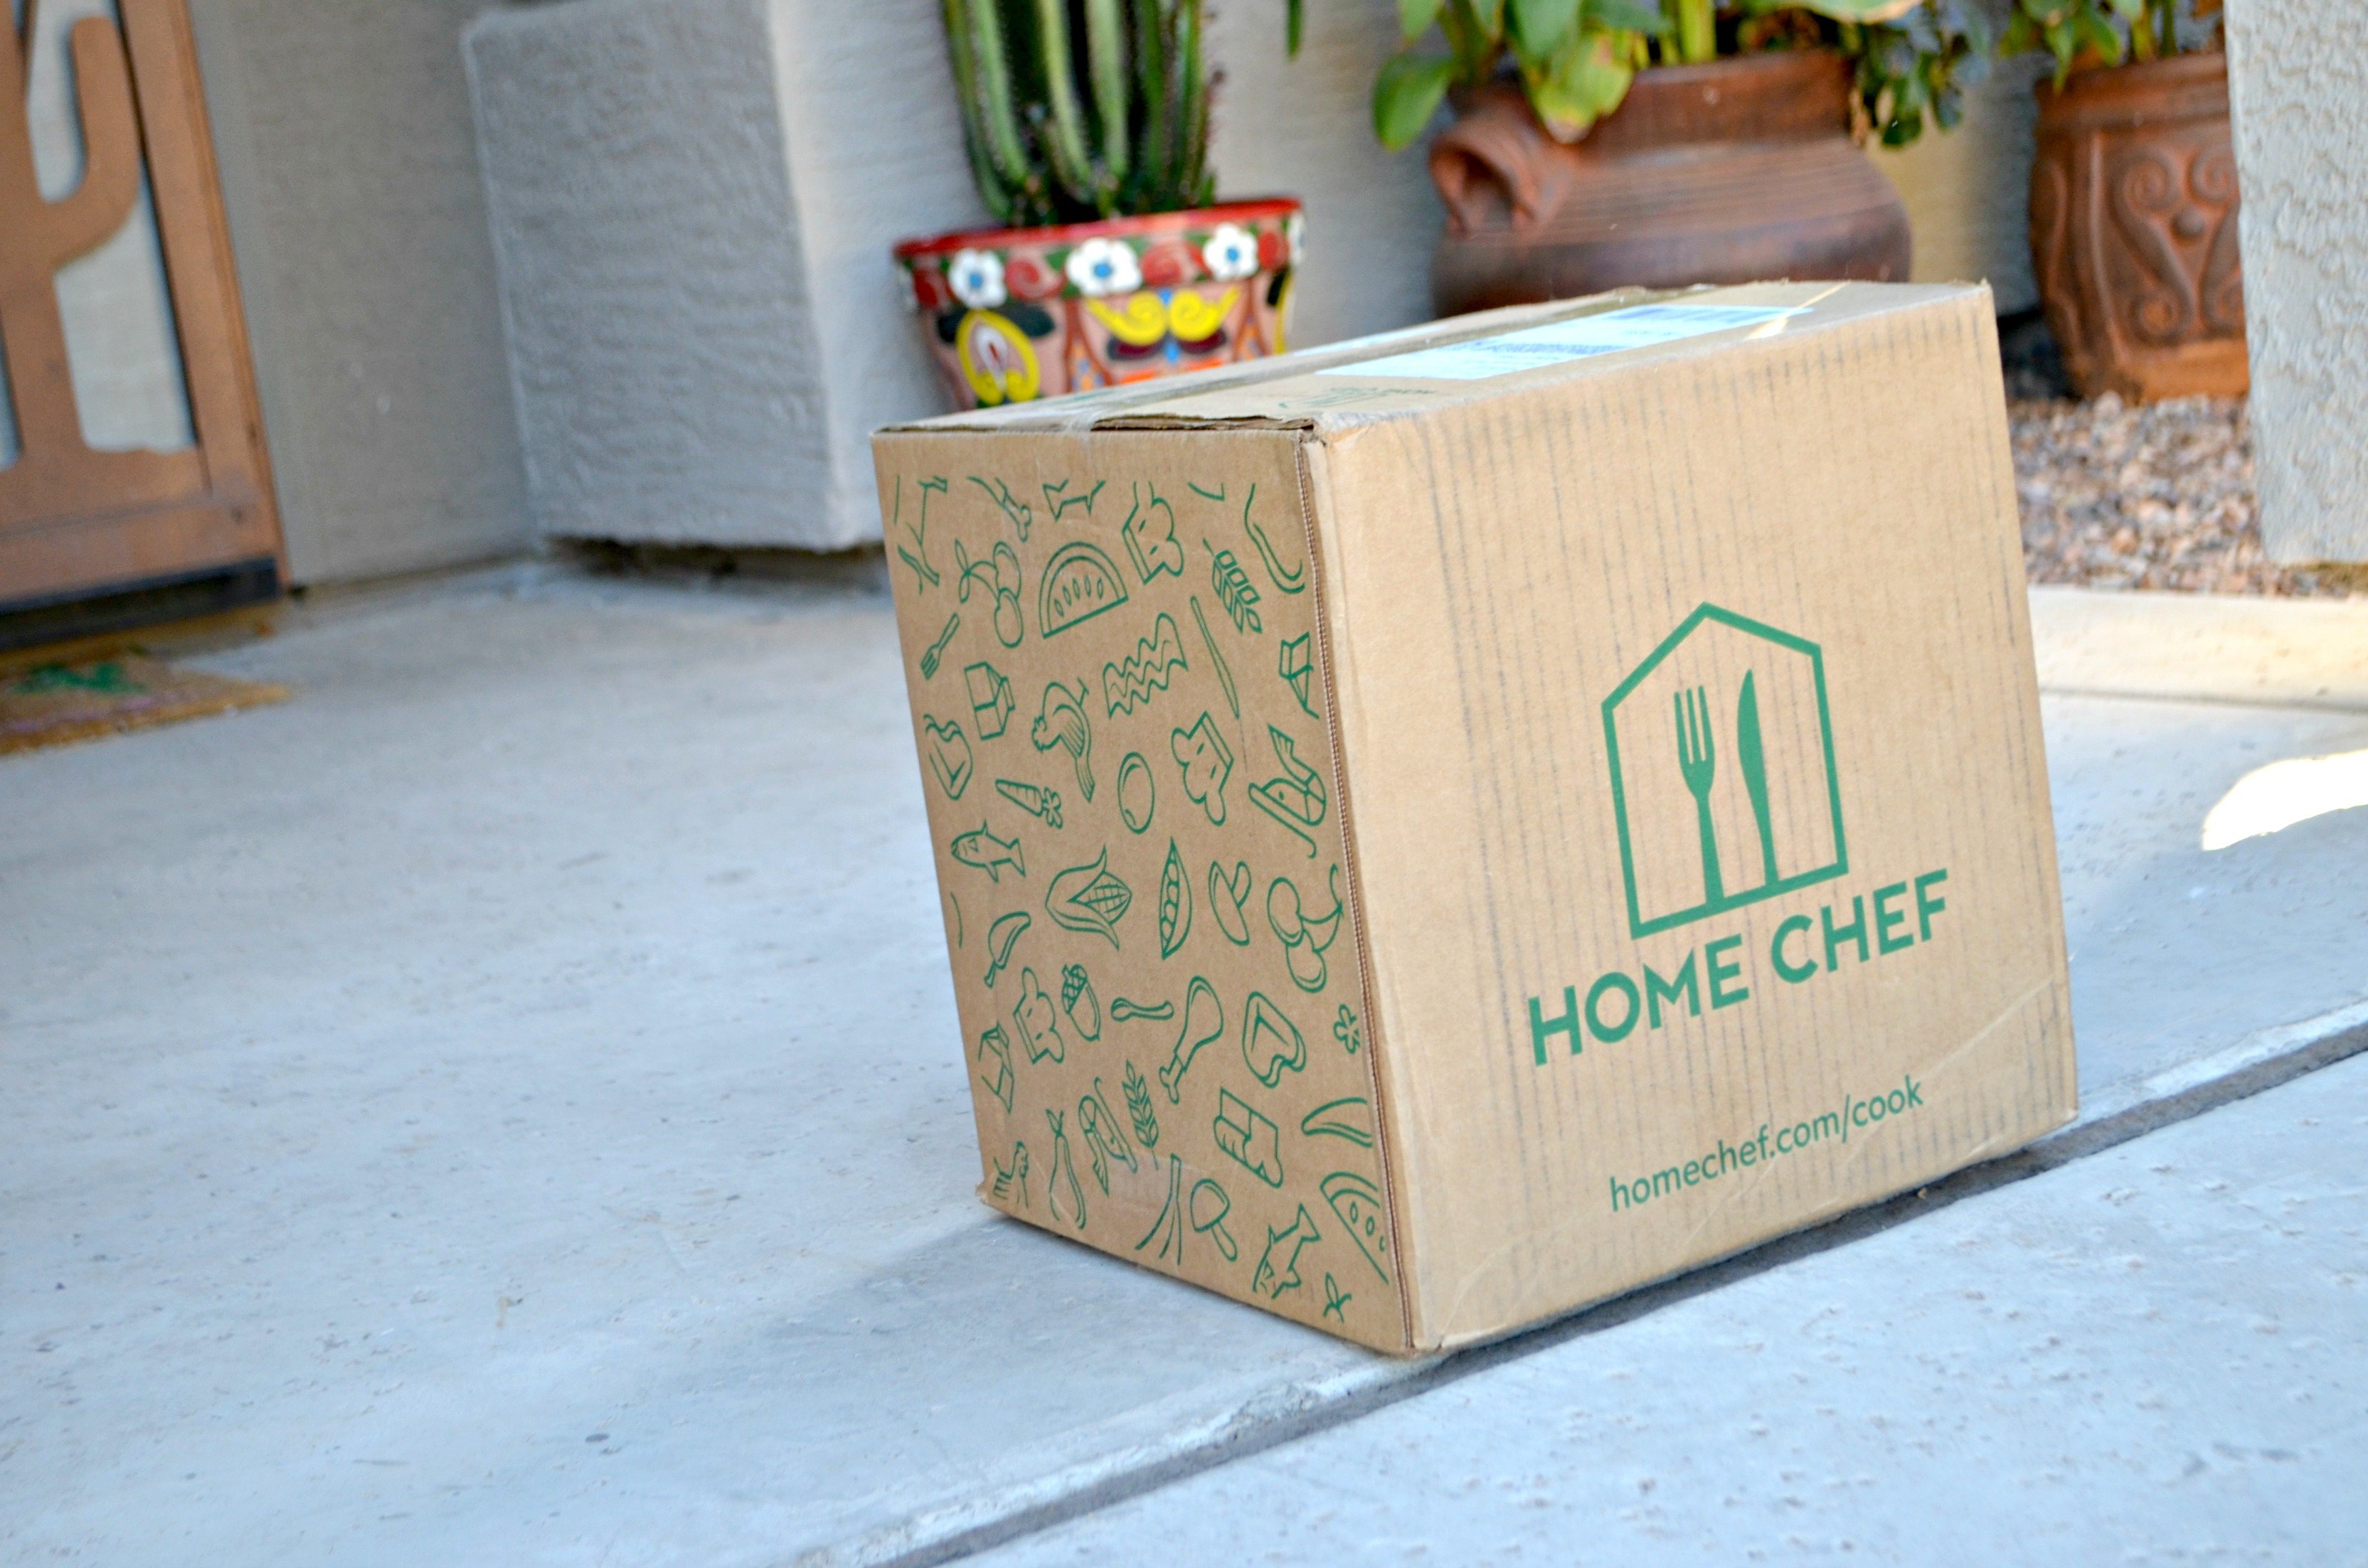 home chef meal deal – home chef box